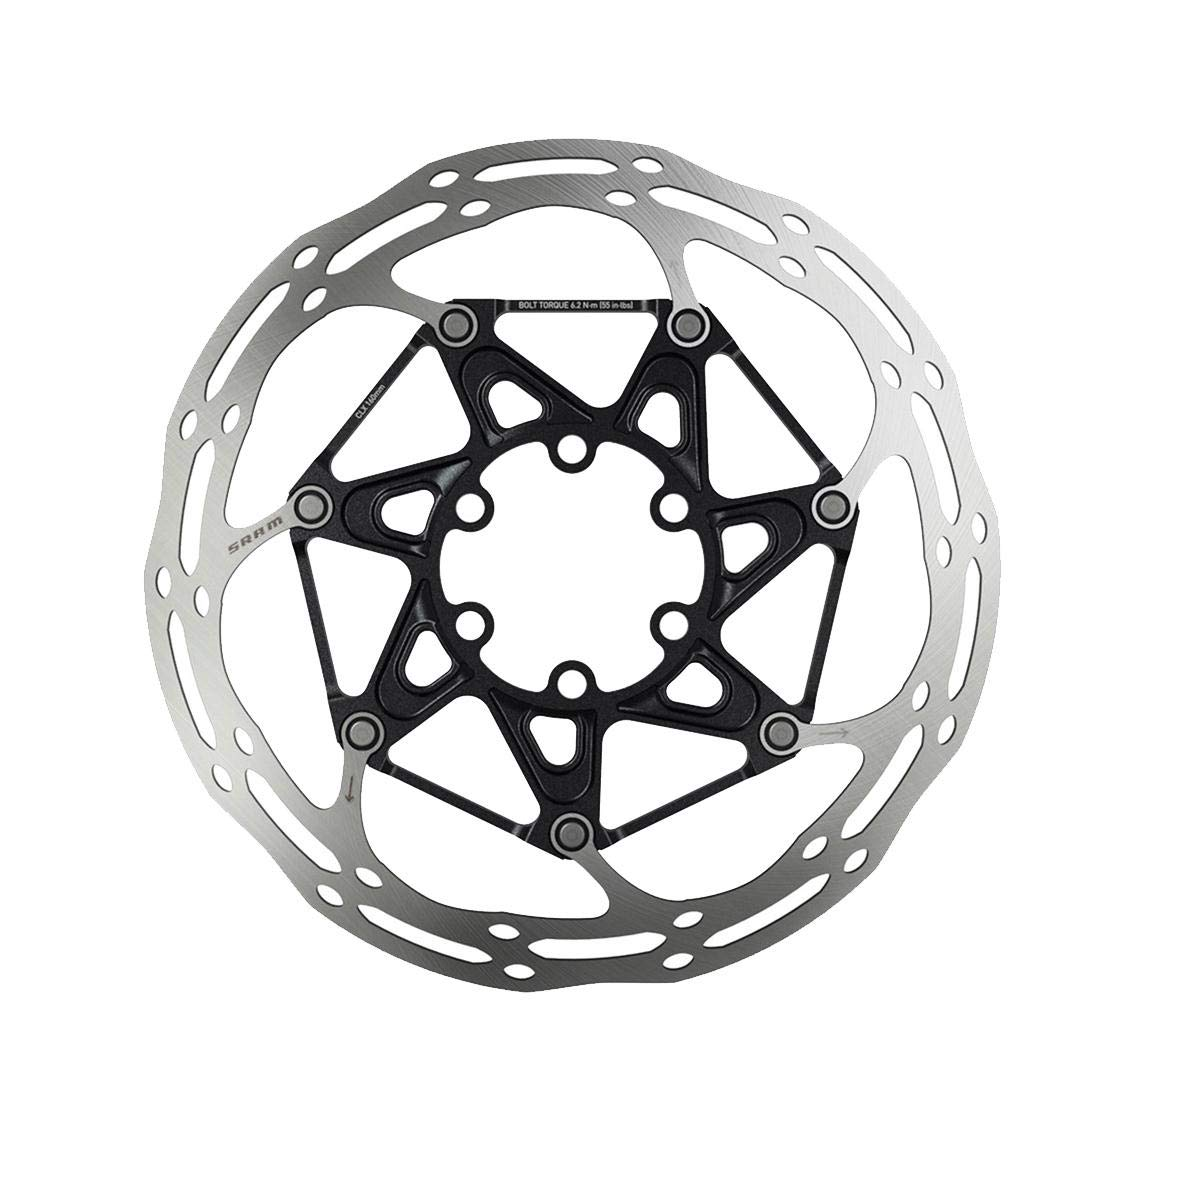 SRAM Centerline X Rounded Rotor Silver, 140mm